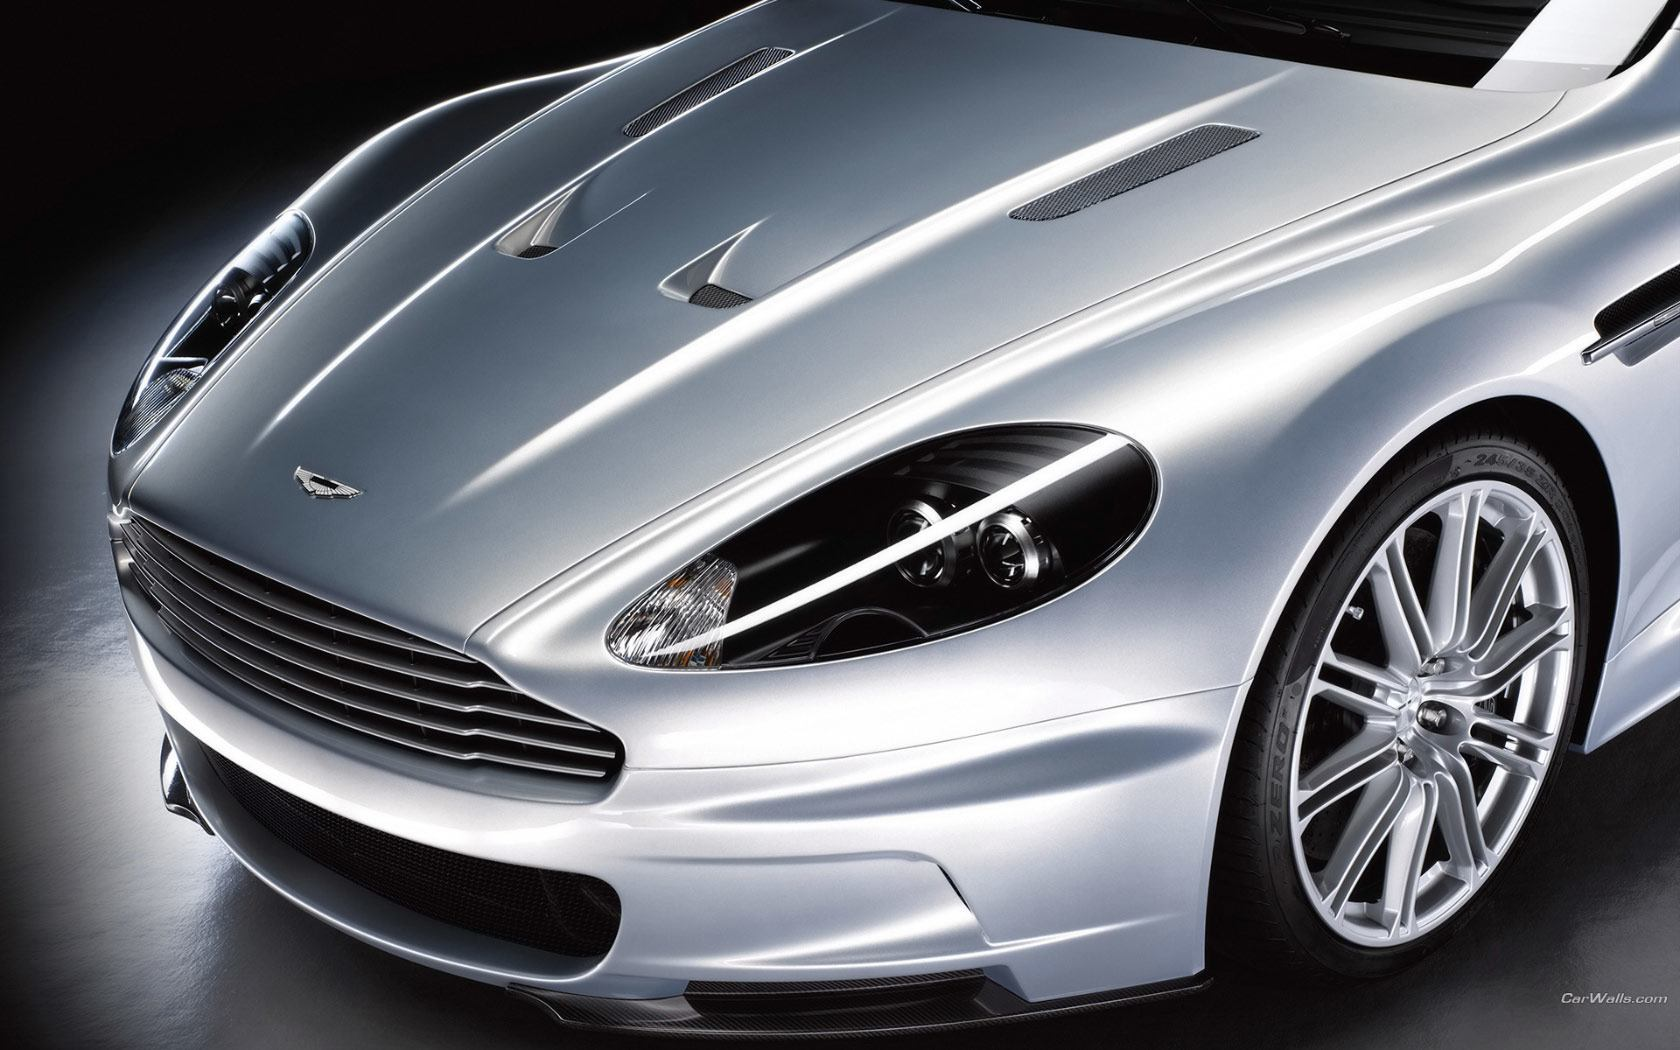 Aston Martin DBS close